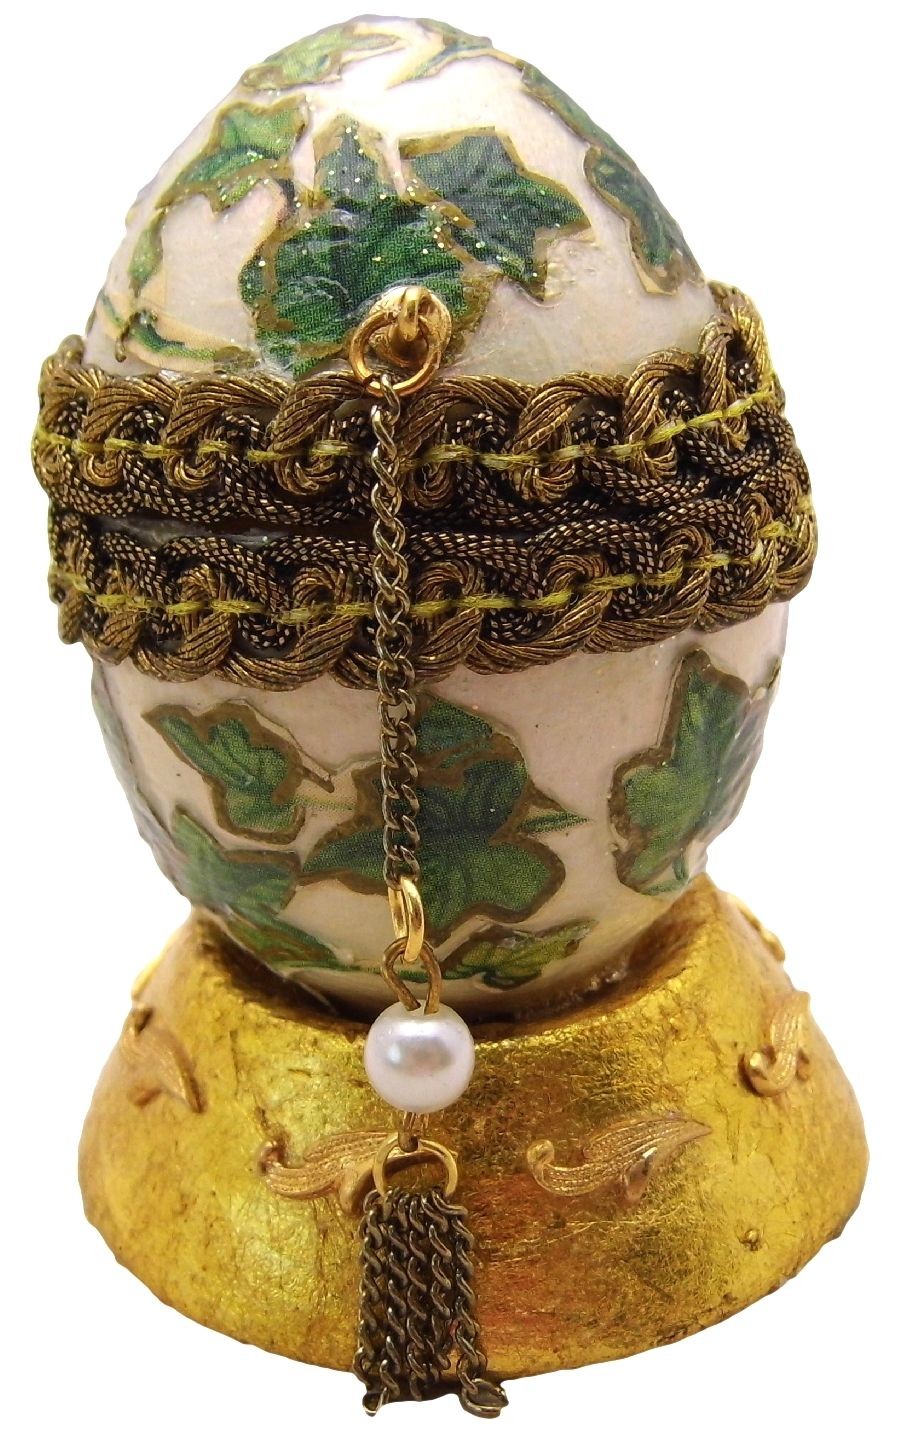 Hand-Decorated Real CHICKEN Egg Art Top Opens IVY Signed Collectable Ornate